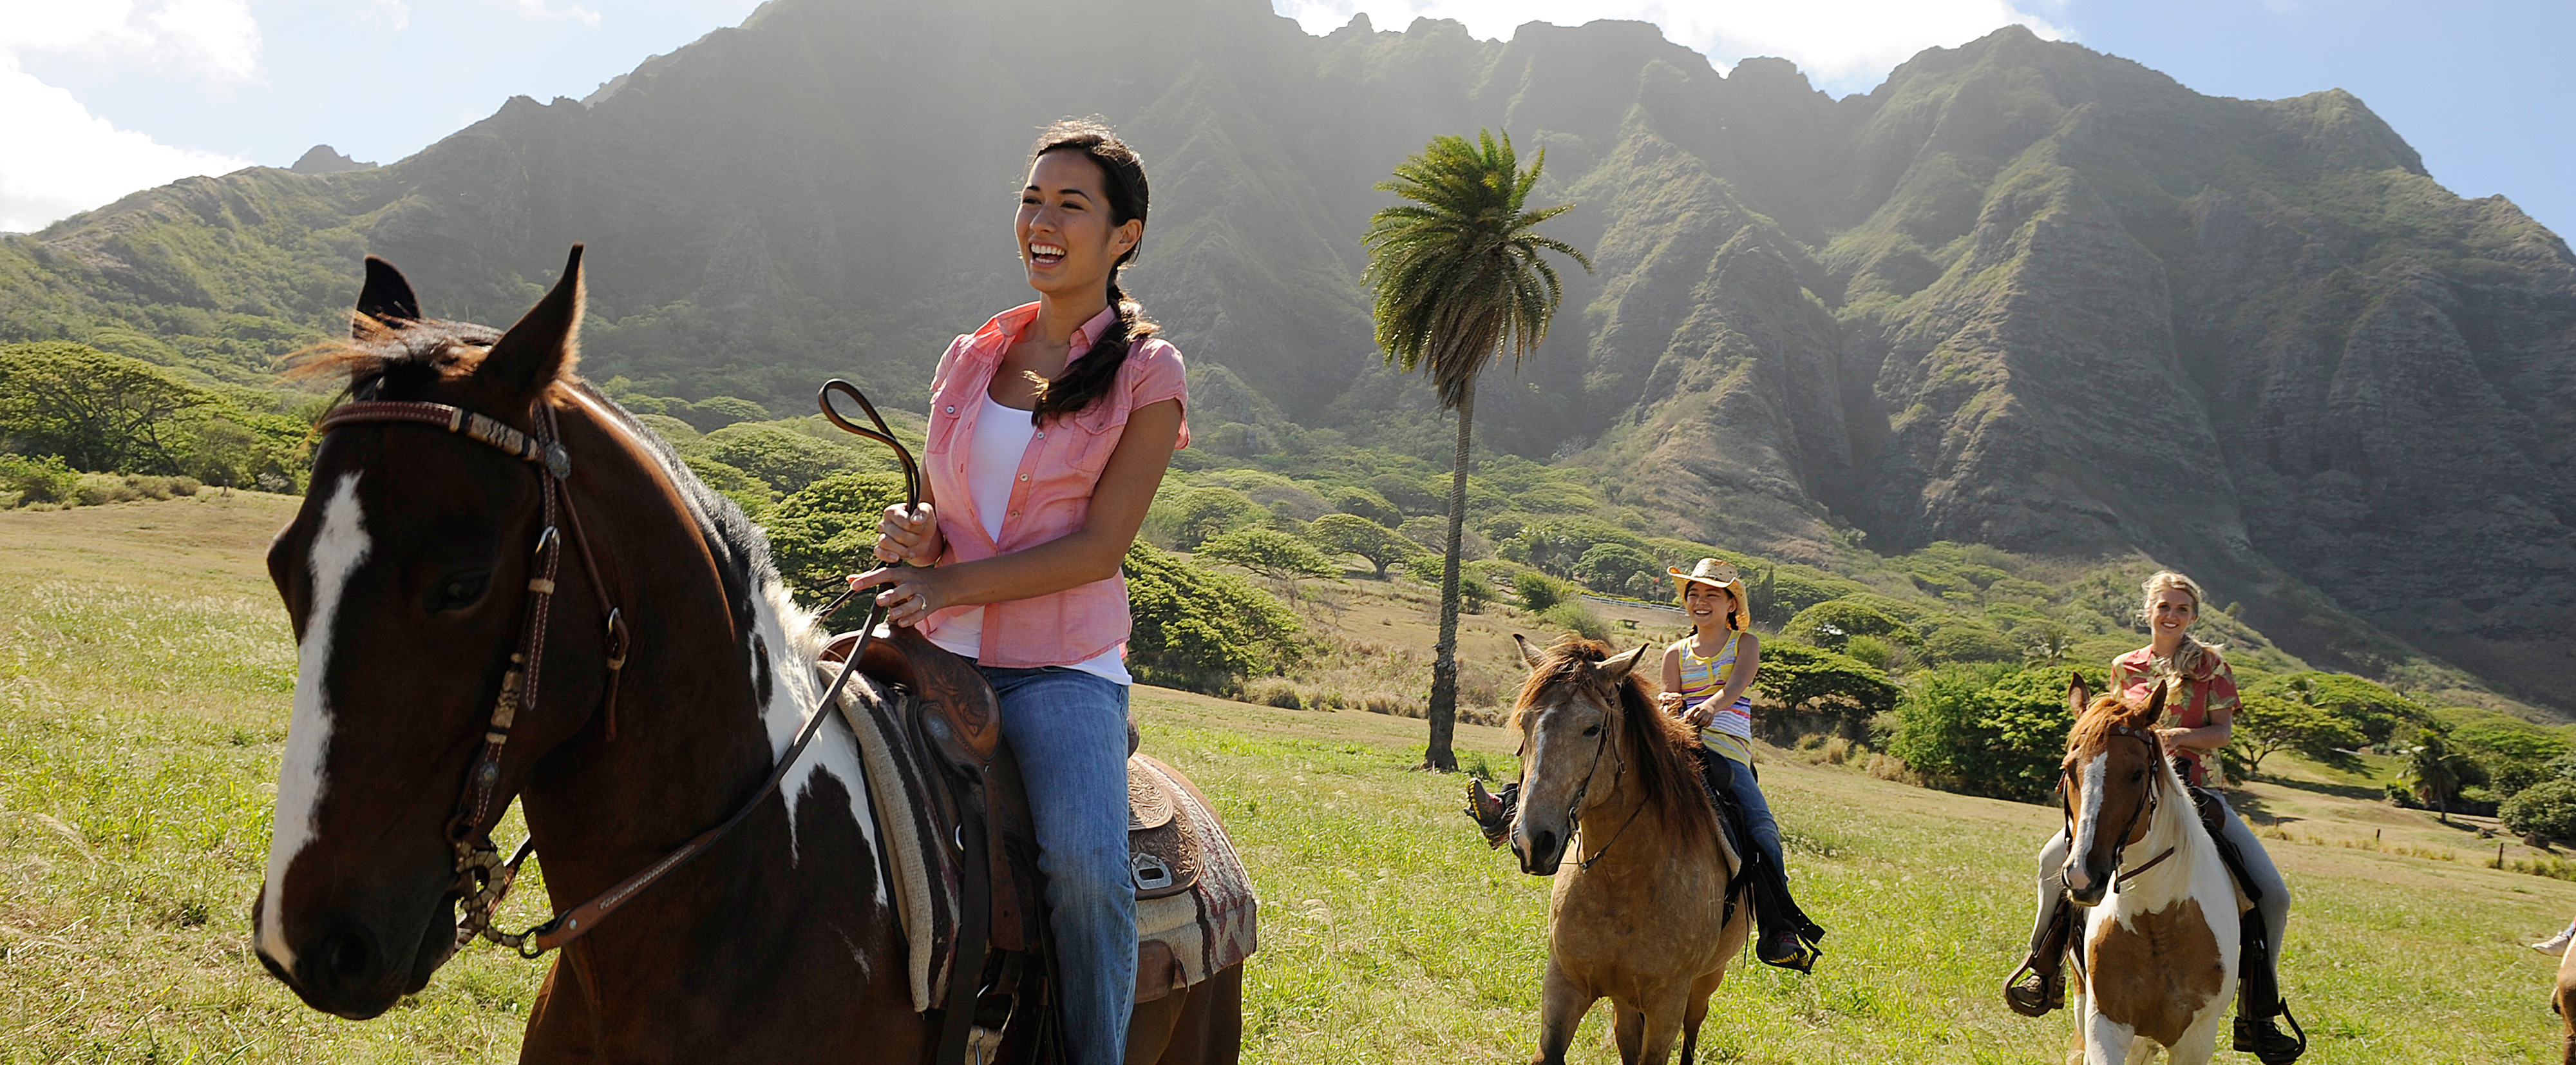 Two women and a girl ride horses across a Hawaiian meadow with lush hills in the background